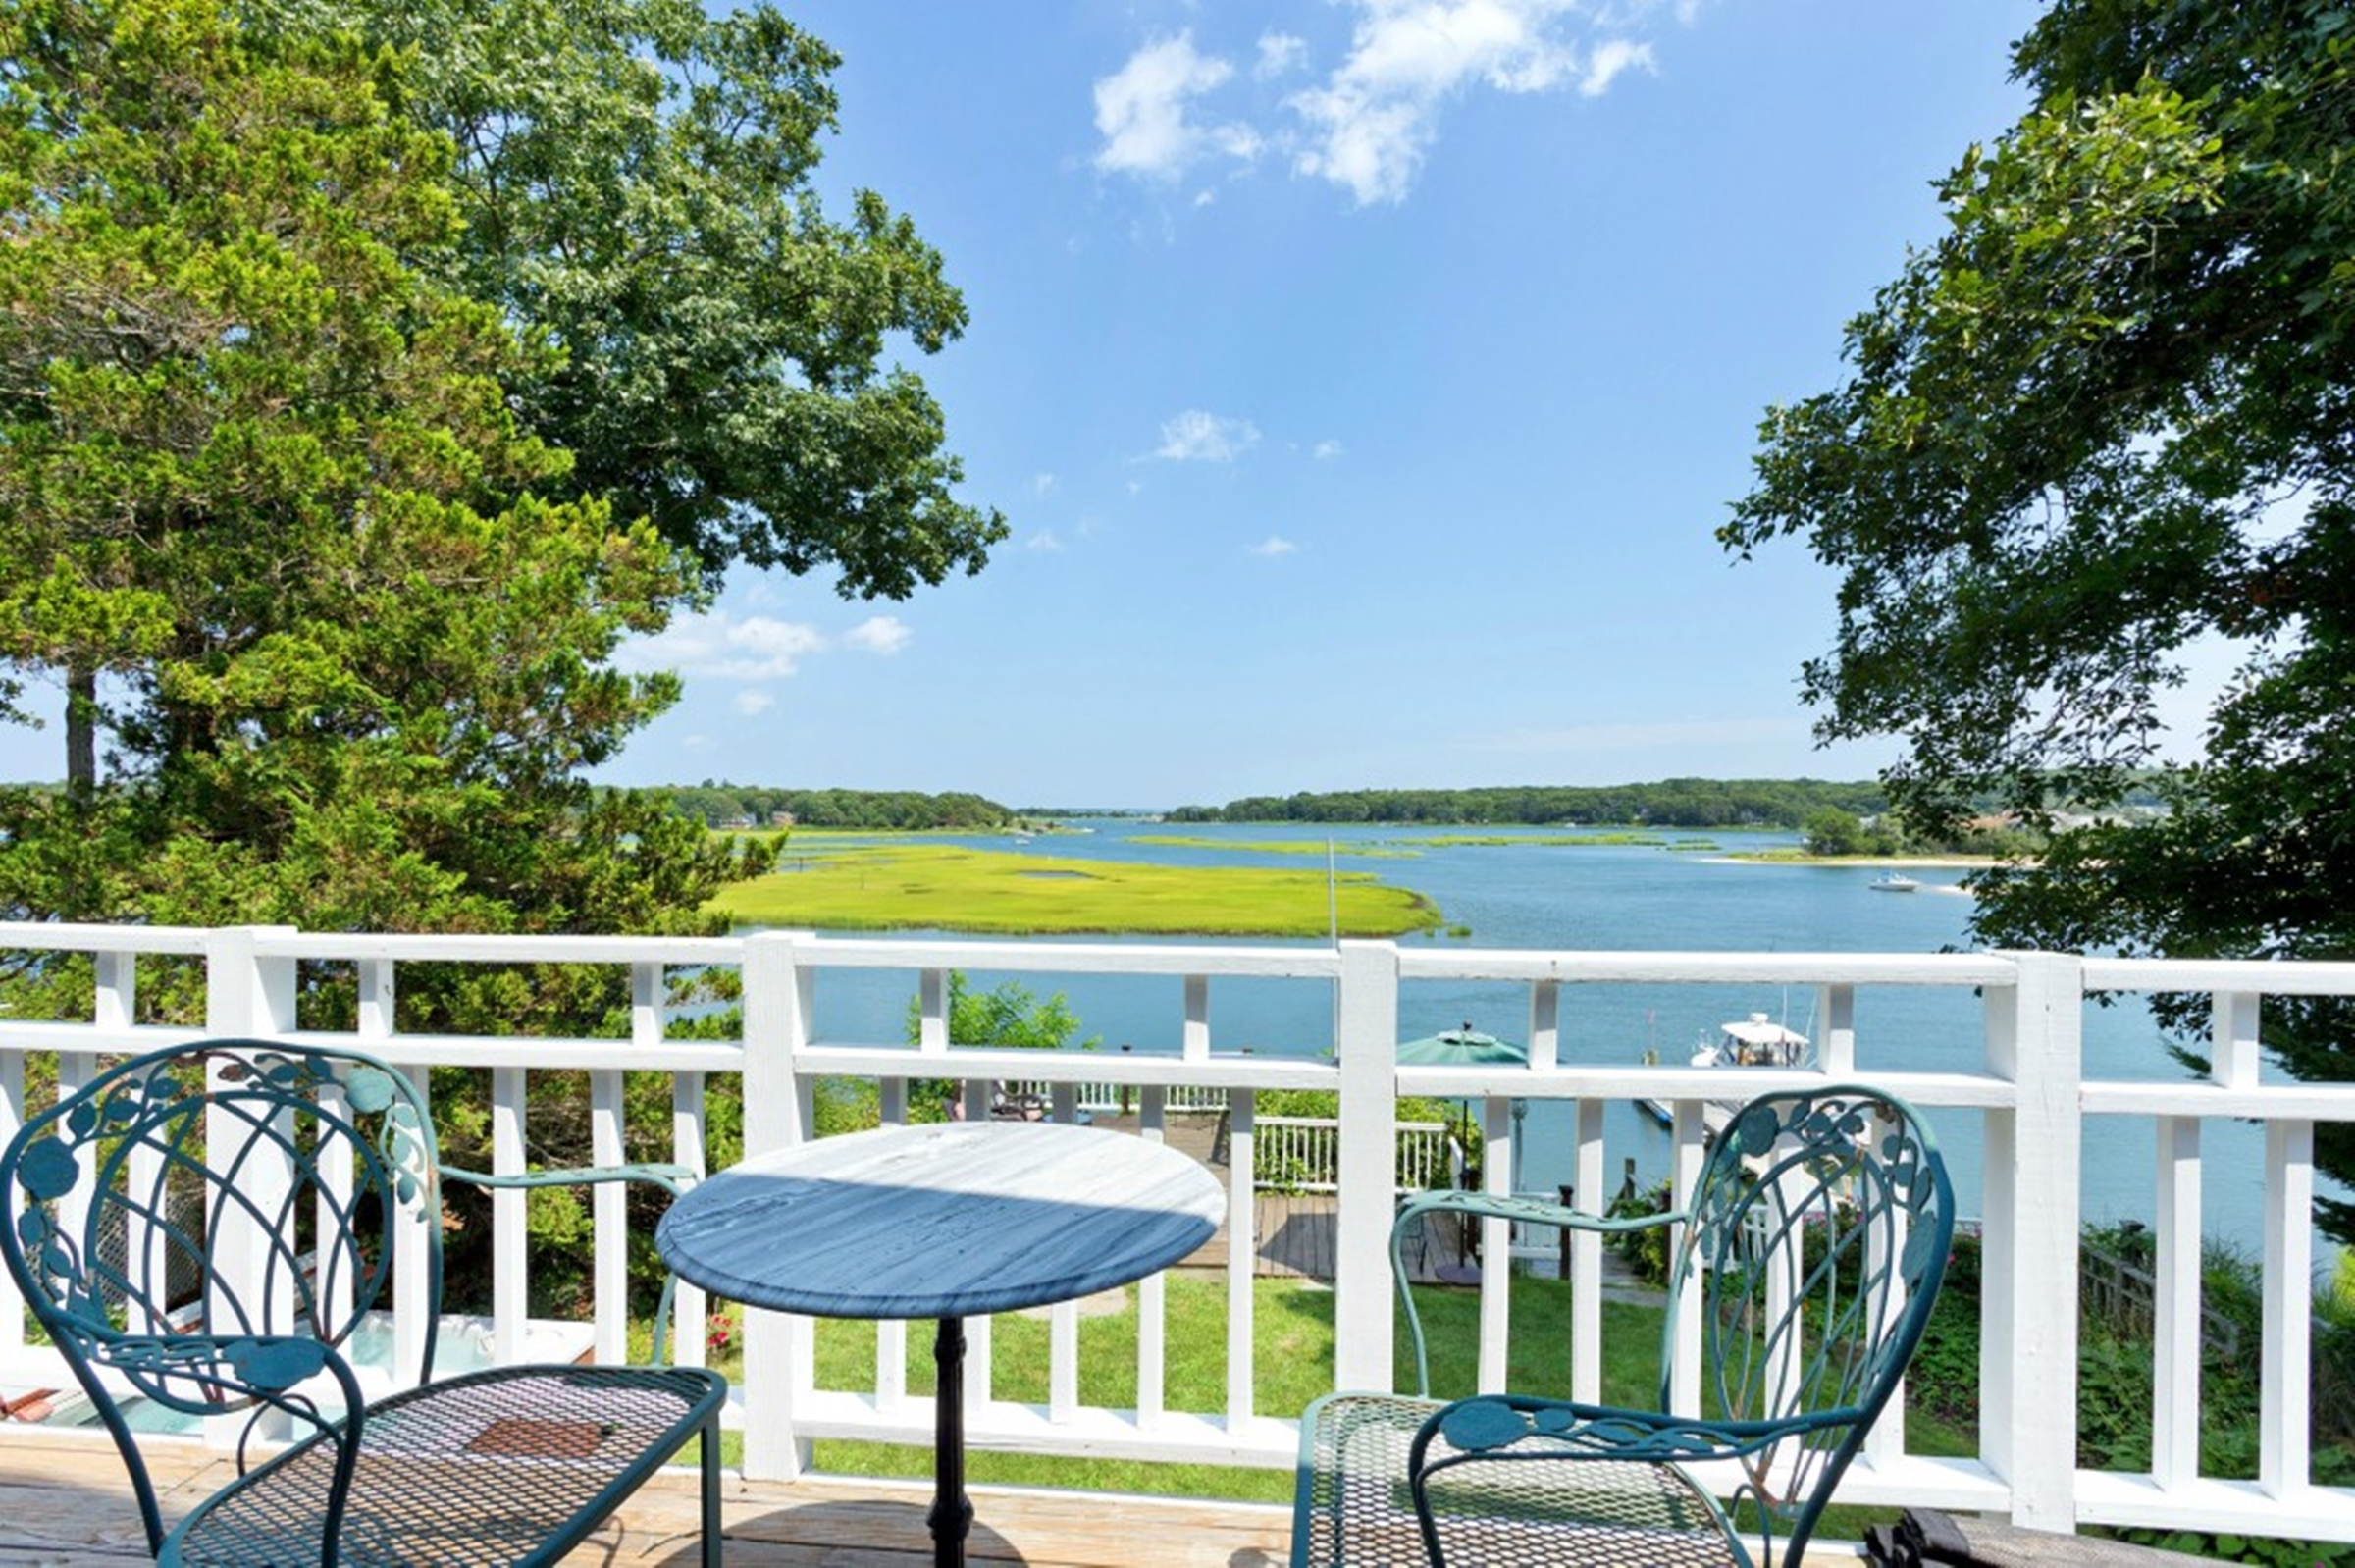 Single Family Home for Sale at 2 Story 1555 Fleetwood Rd Cutchogue, New York, 11935 United States